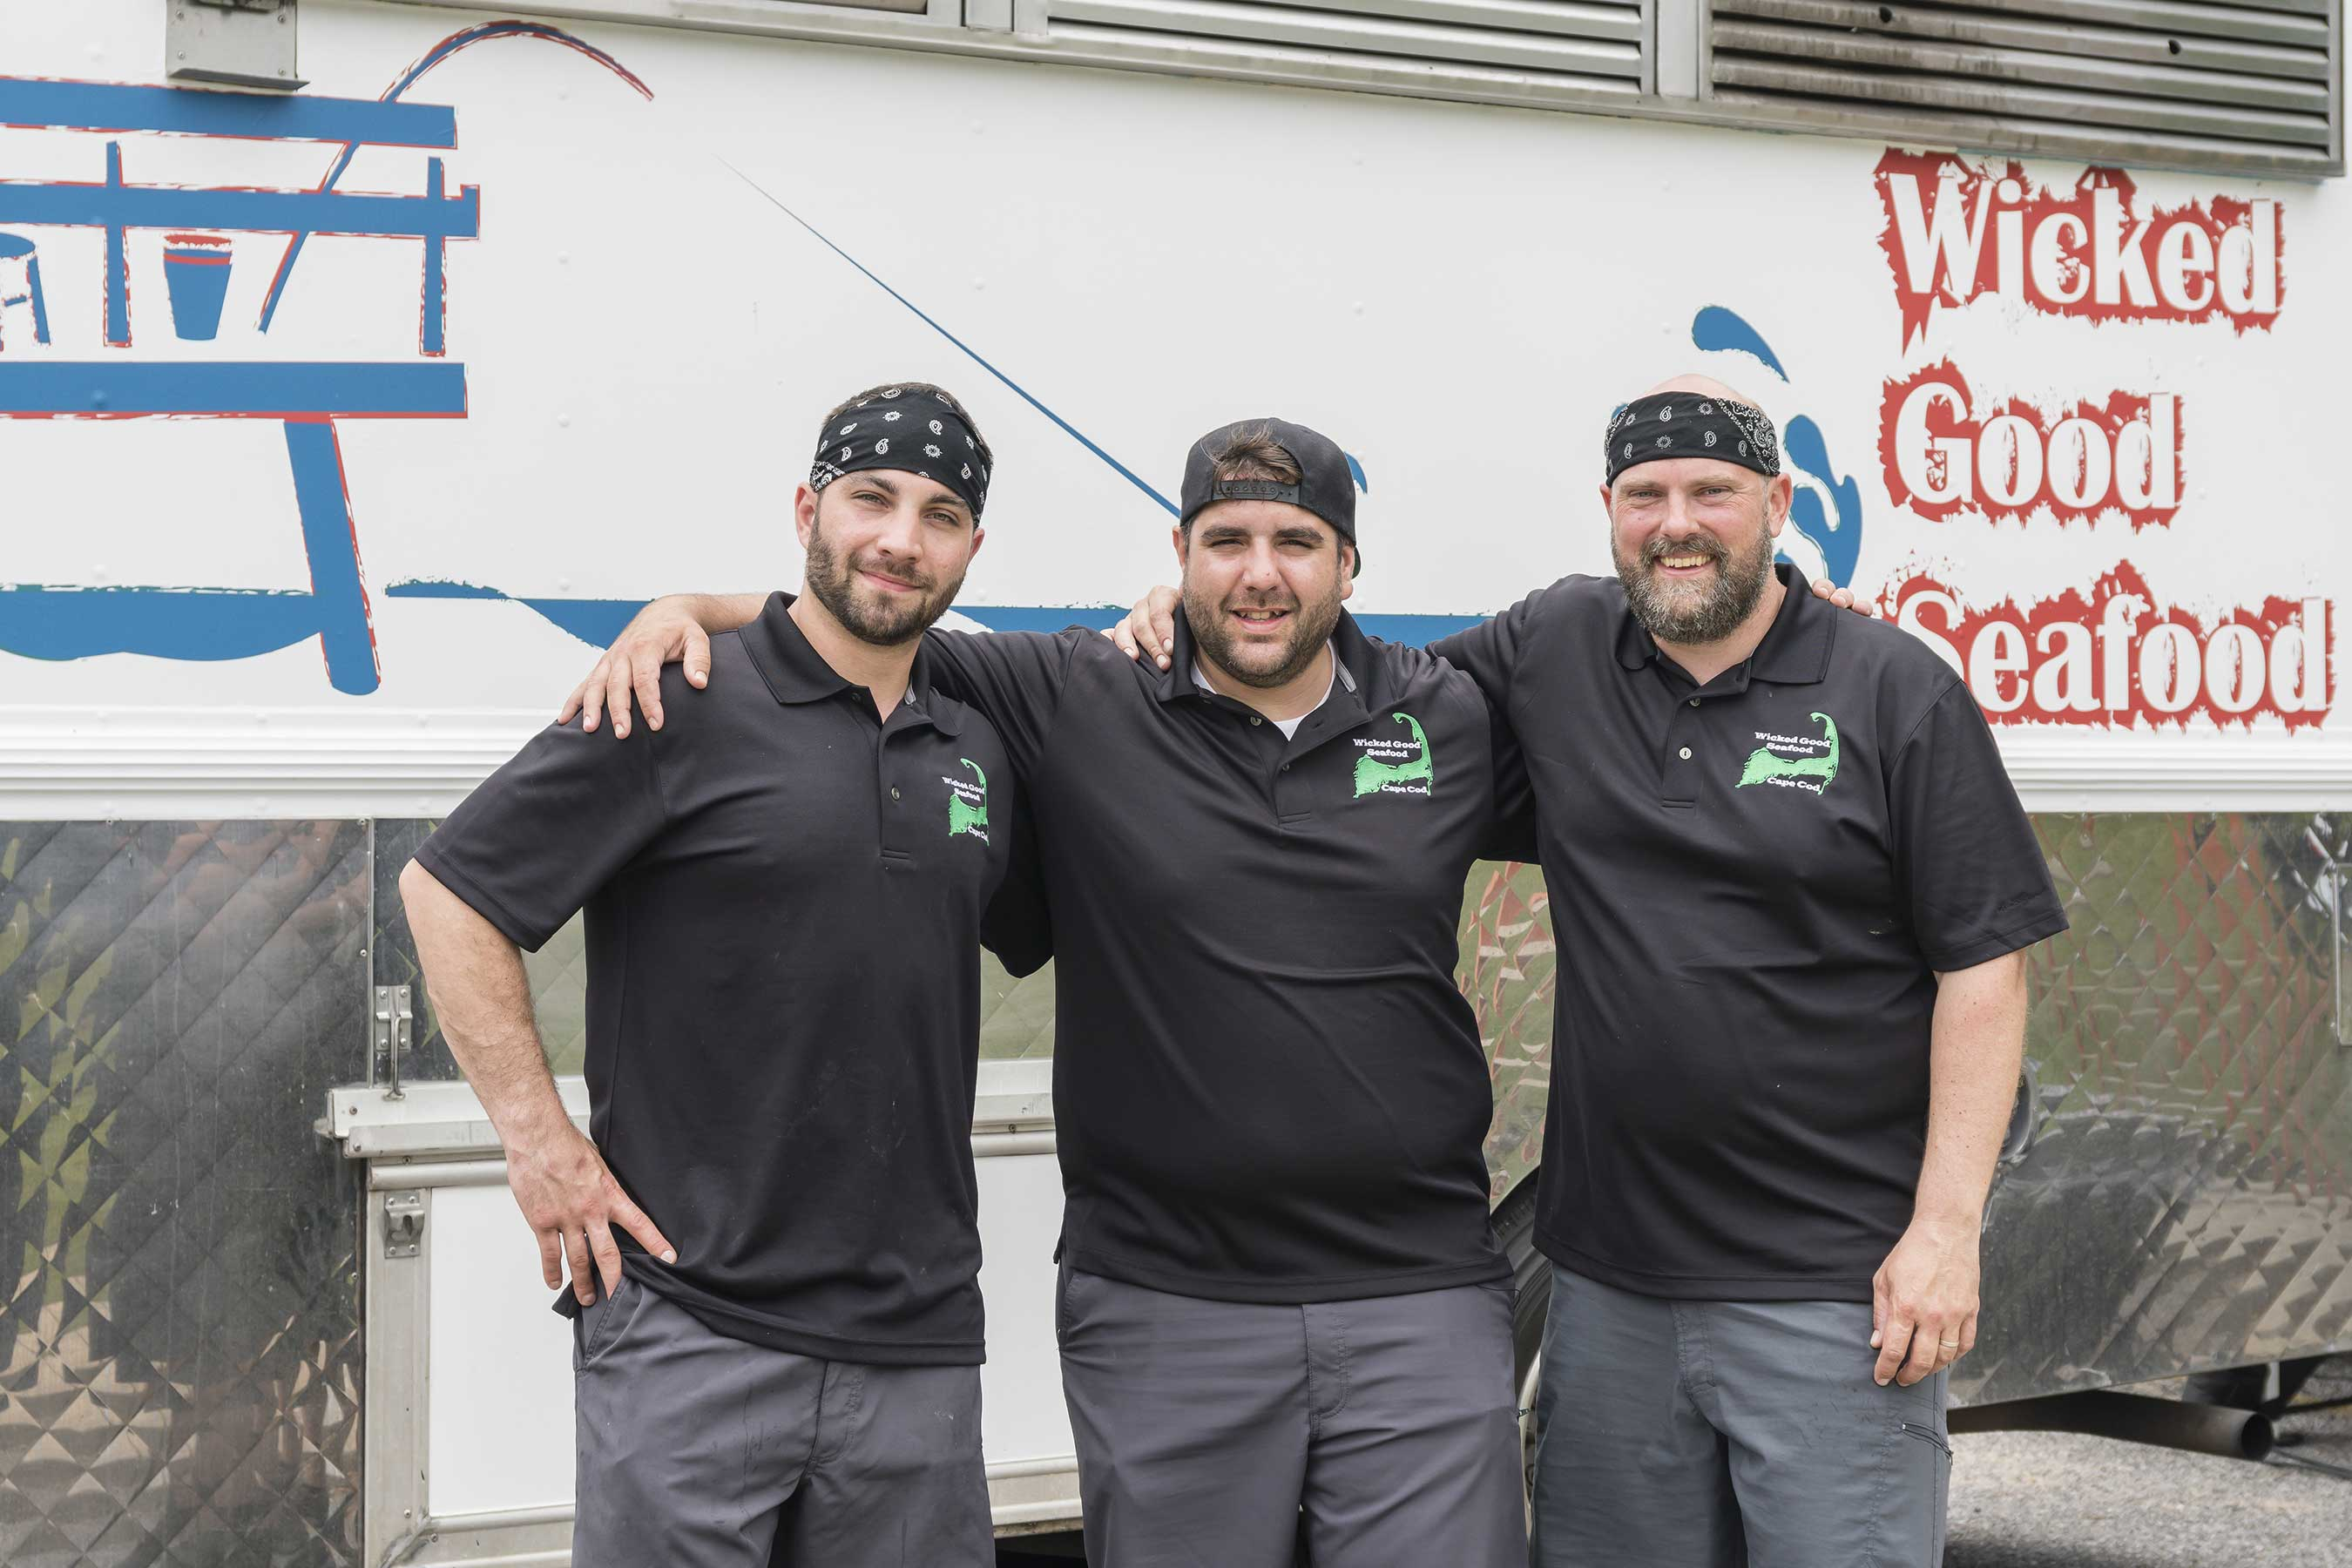 Team Wicked Good Seafood on Food Network's The Great Food Truck Race